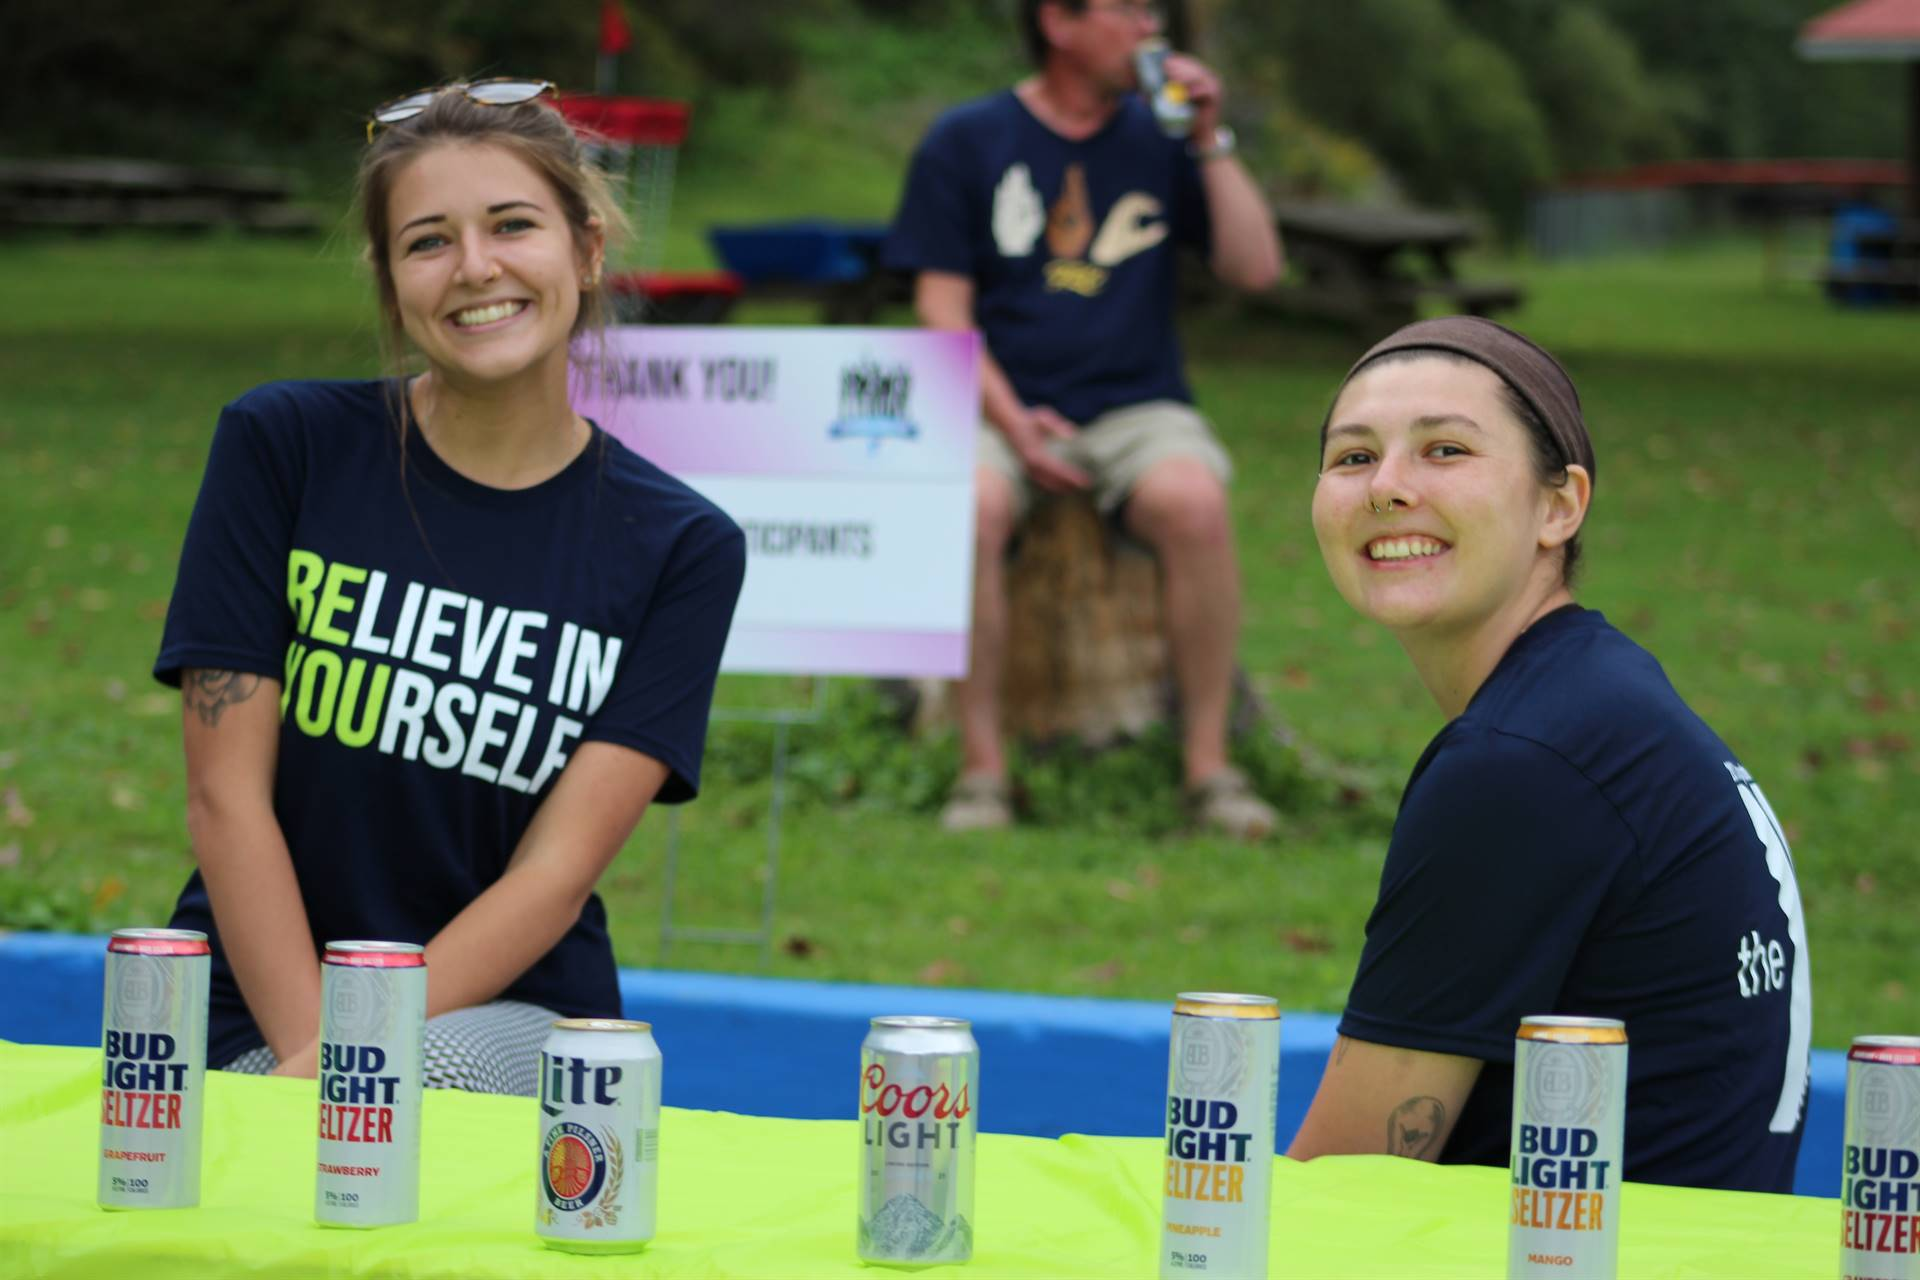 staff handing out beverages